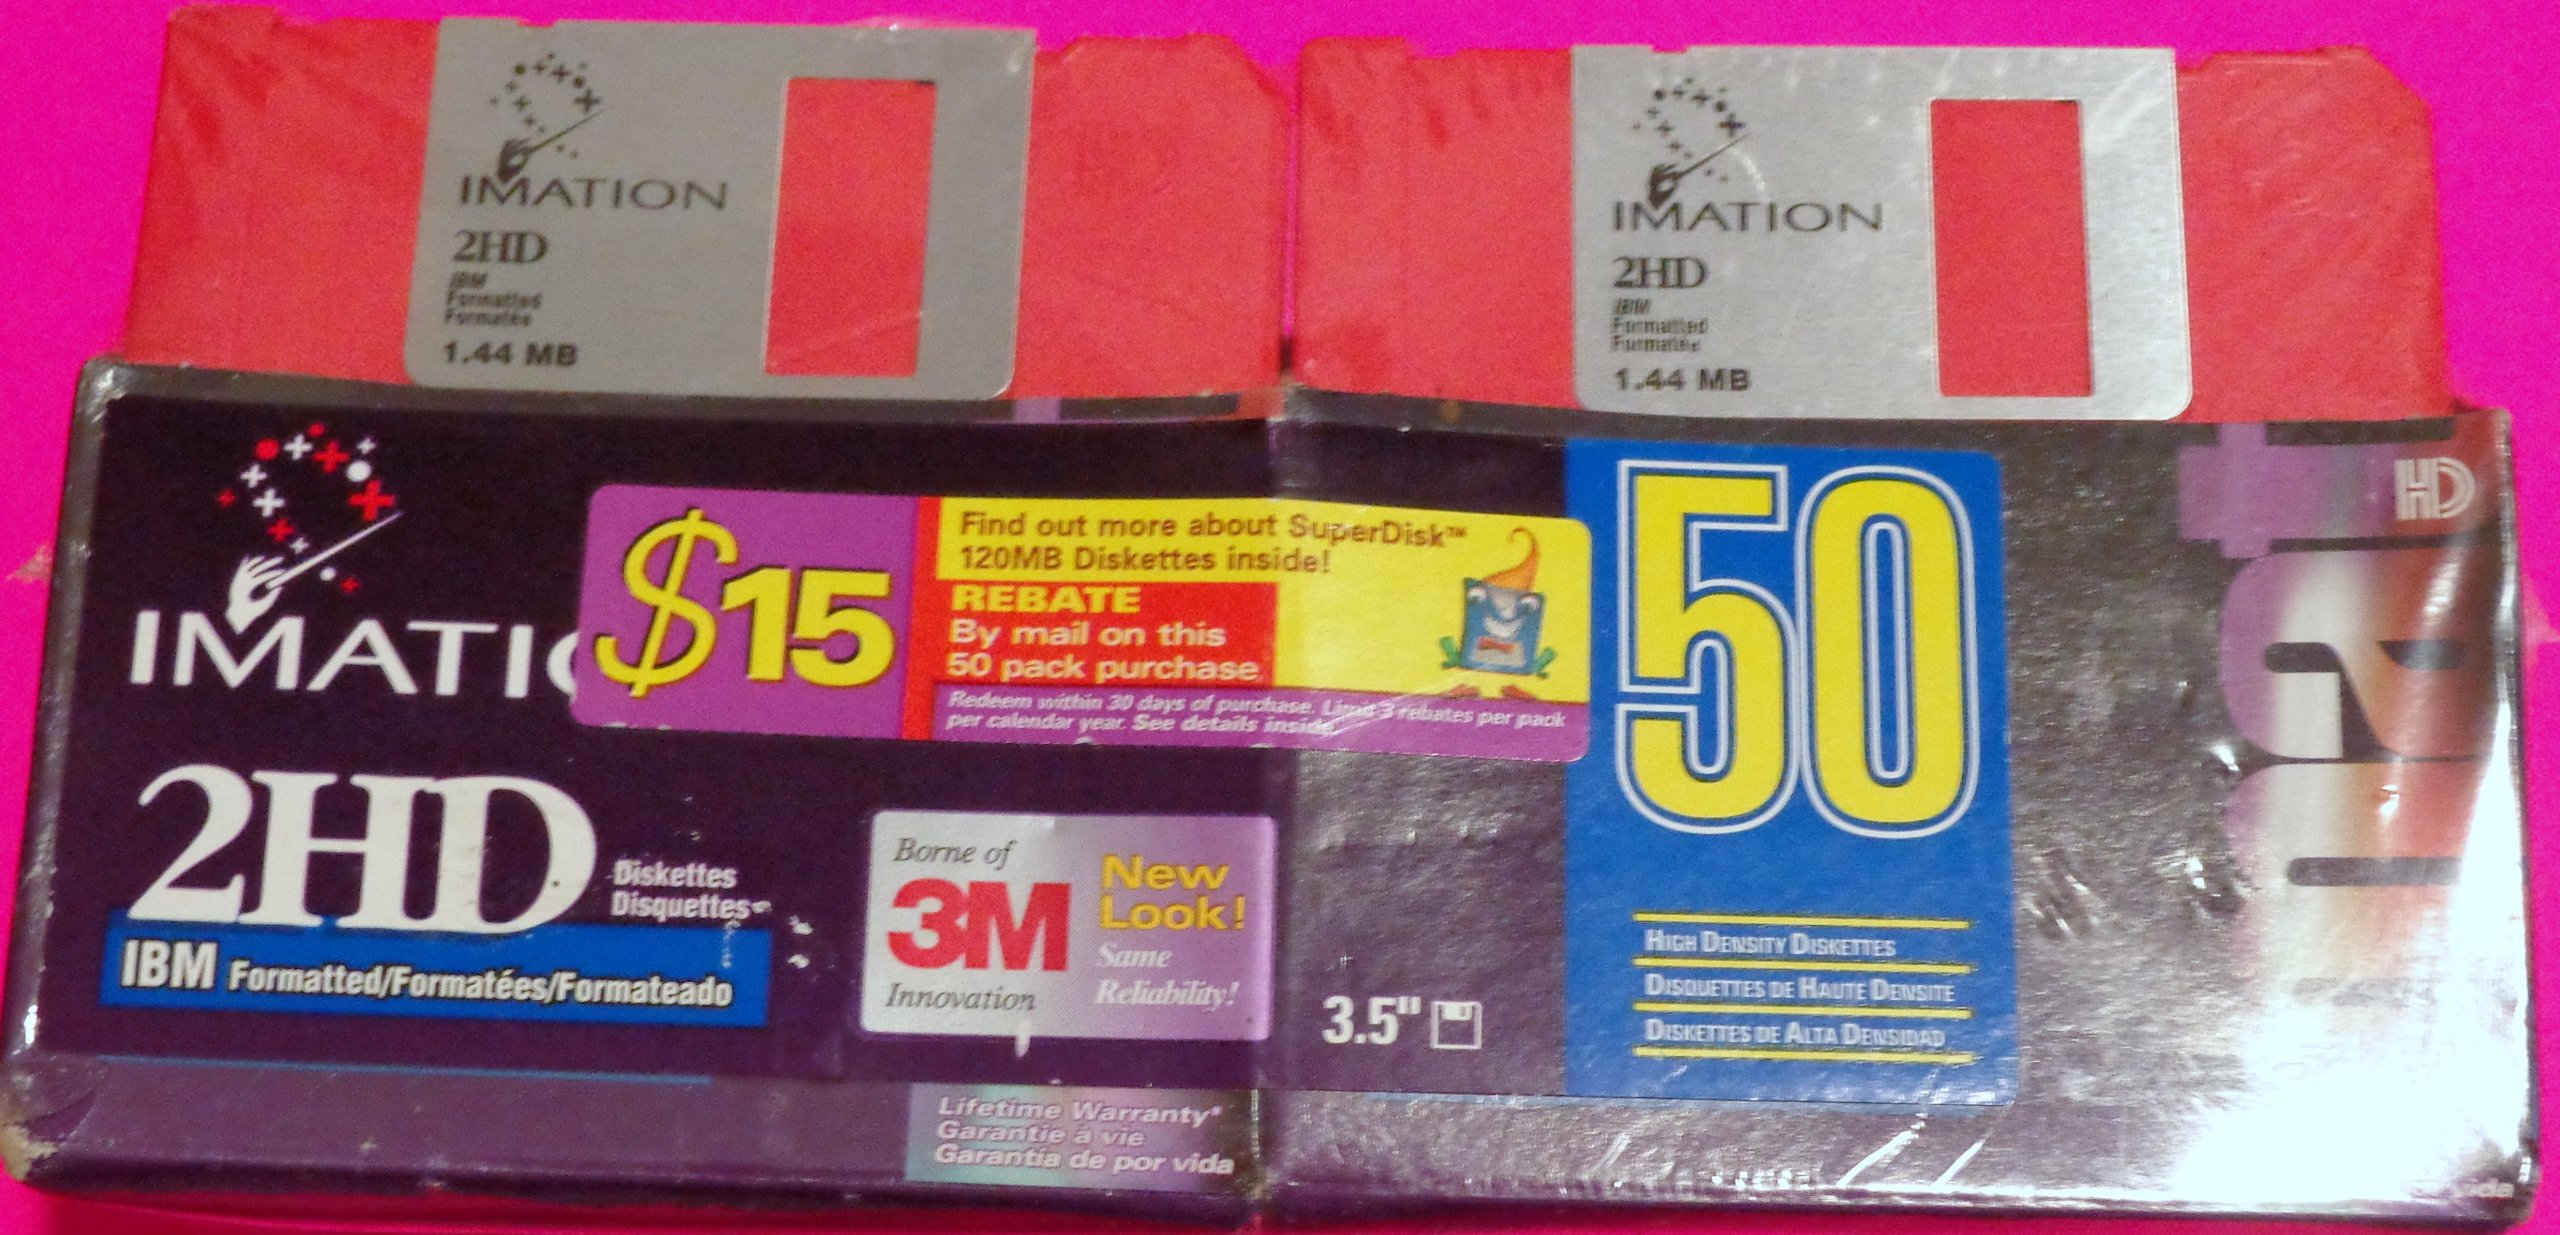 Imation 50 Pack Rainbow Color 3.5'' Floppy Diskettes 1.4mb 2HD